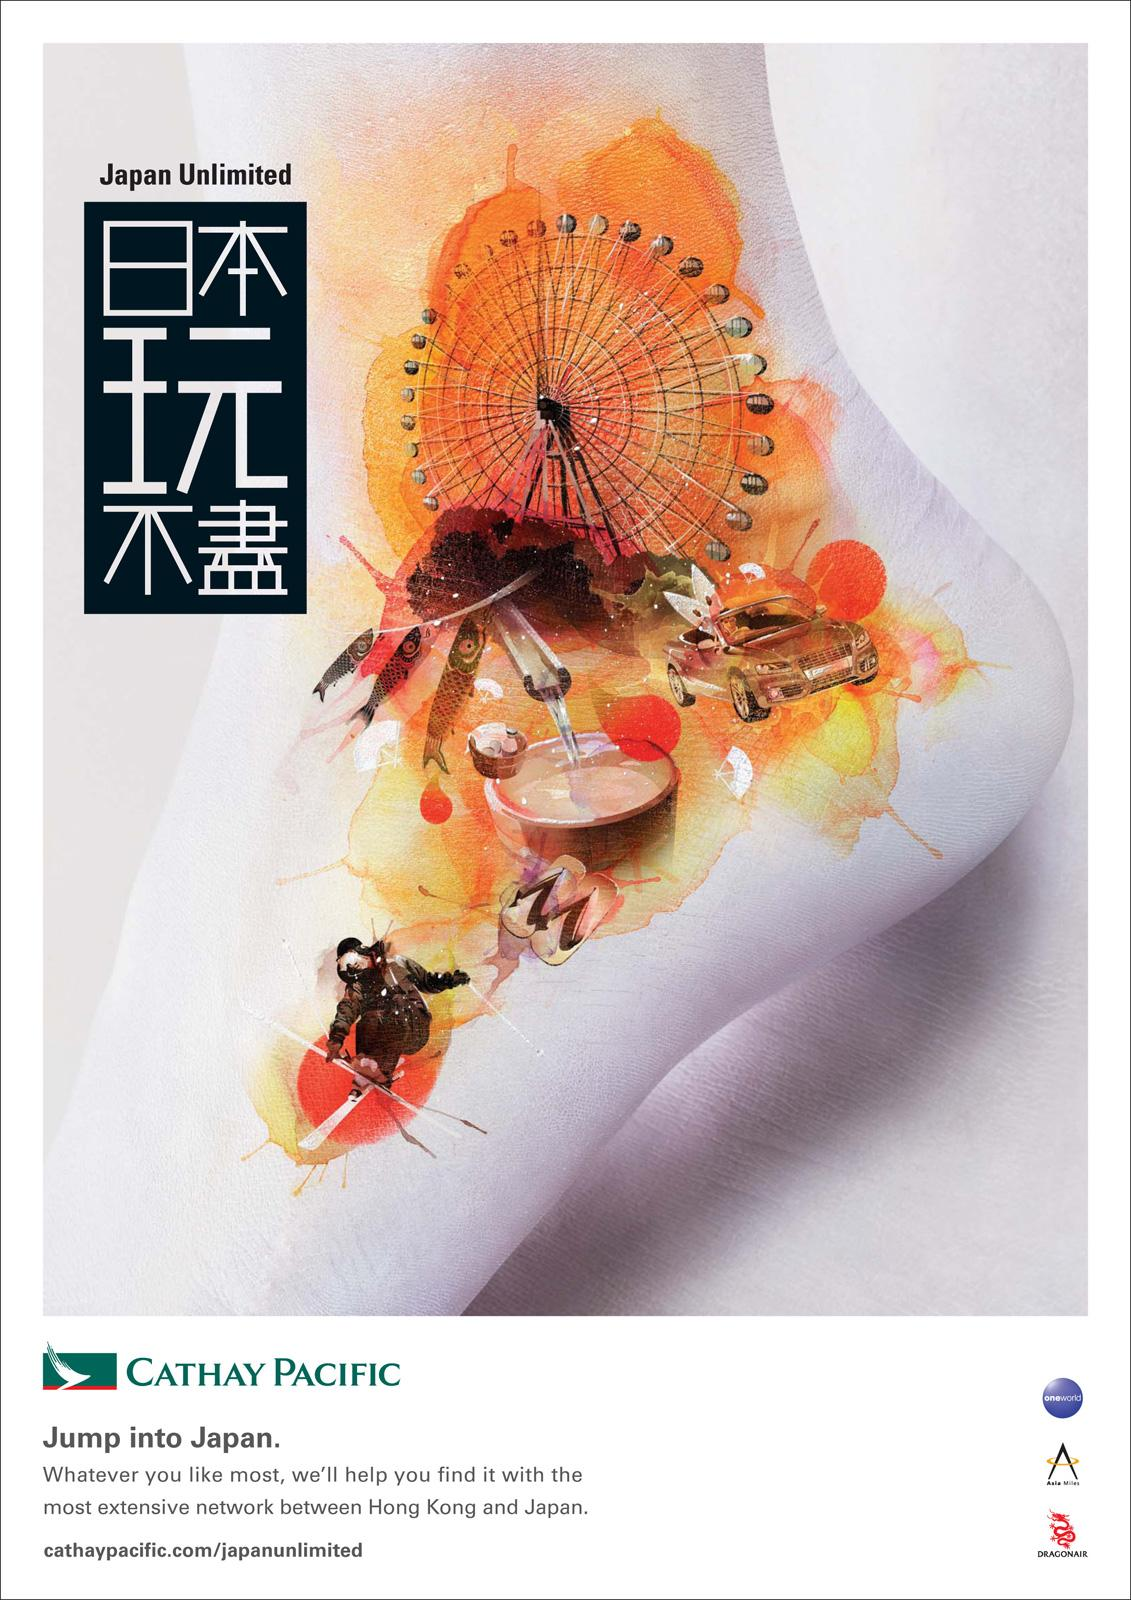 Cathay Pacific Print Ad -  Japan Unlimited, Activity